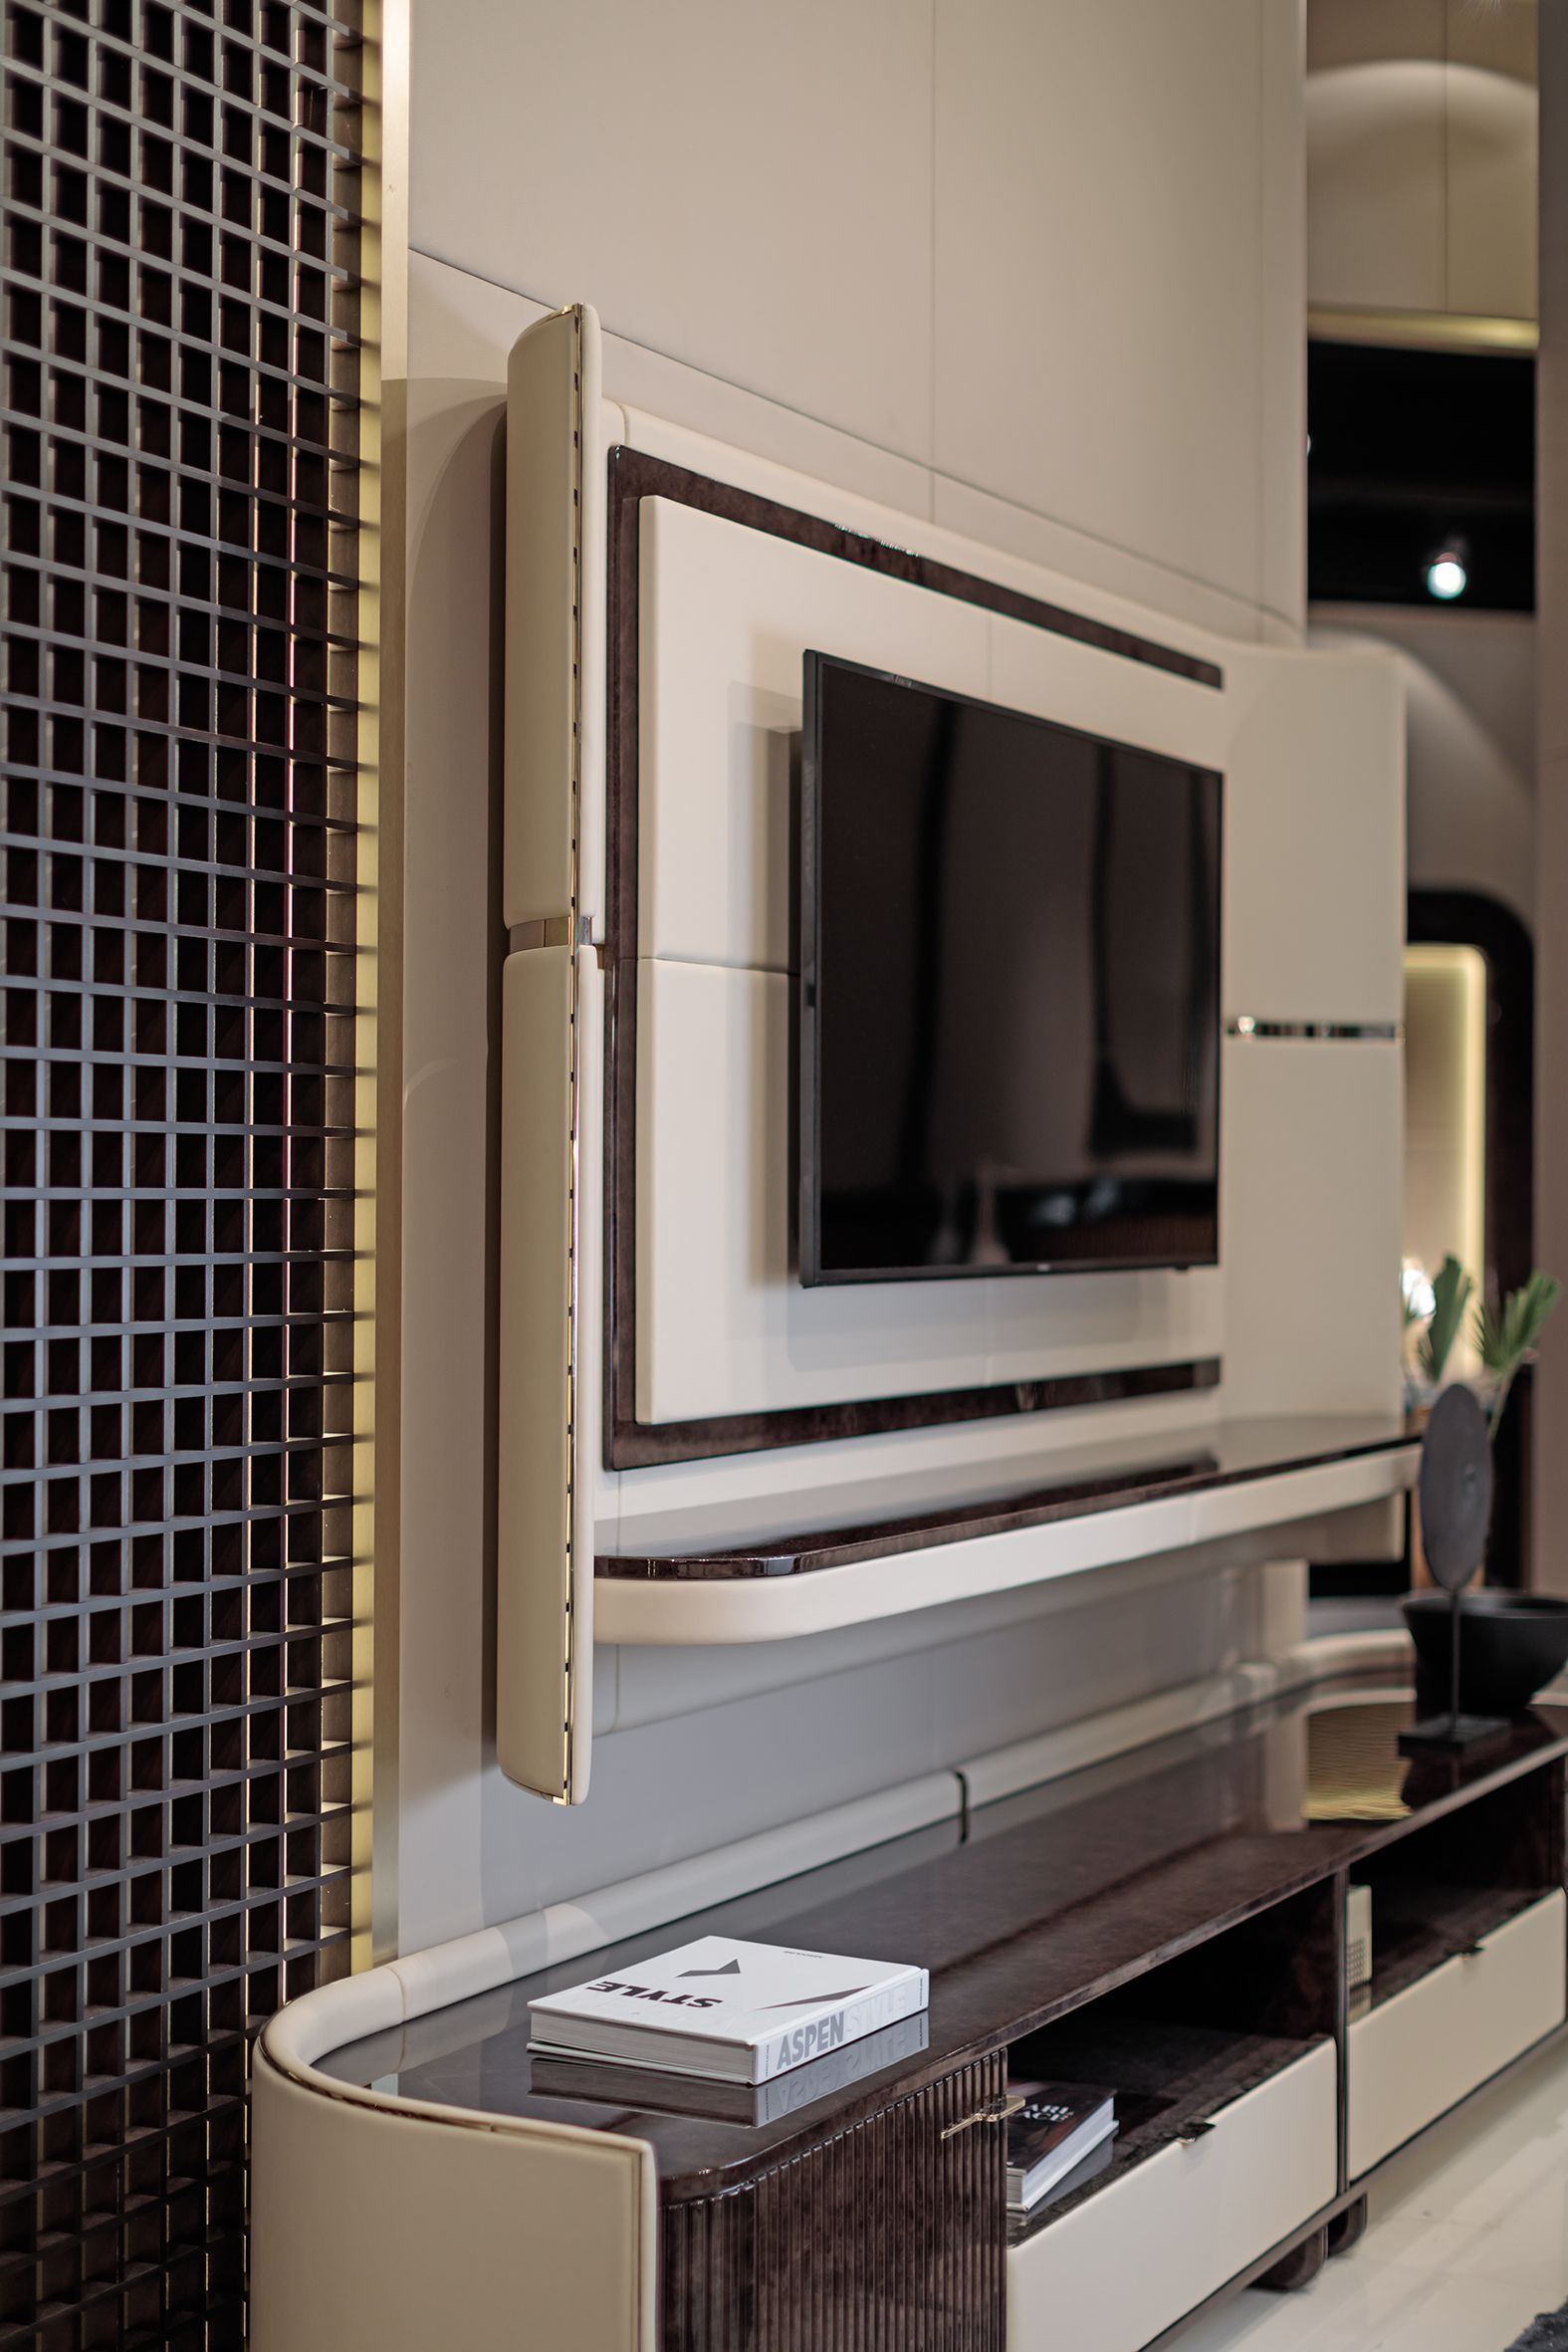 Eclipse living collection turri italian luxury room furniture also for exclusive and modern design in home rh pinterest